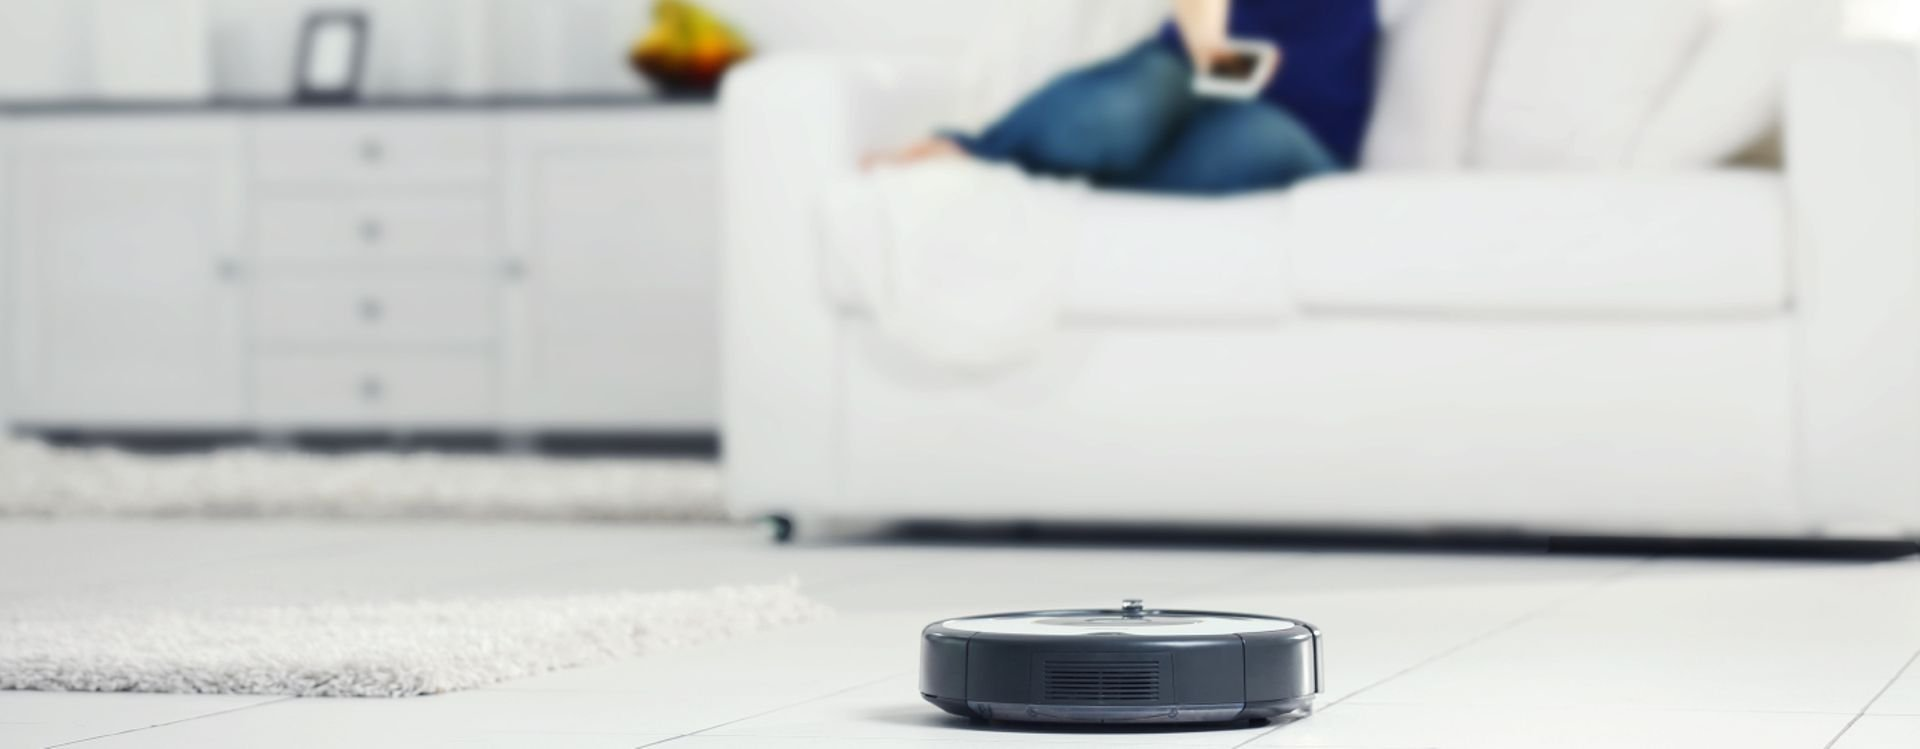 The Swedish Company Electrolux was the First to Unveil Robot Vacuums in 1996.